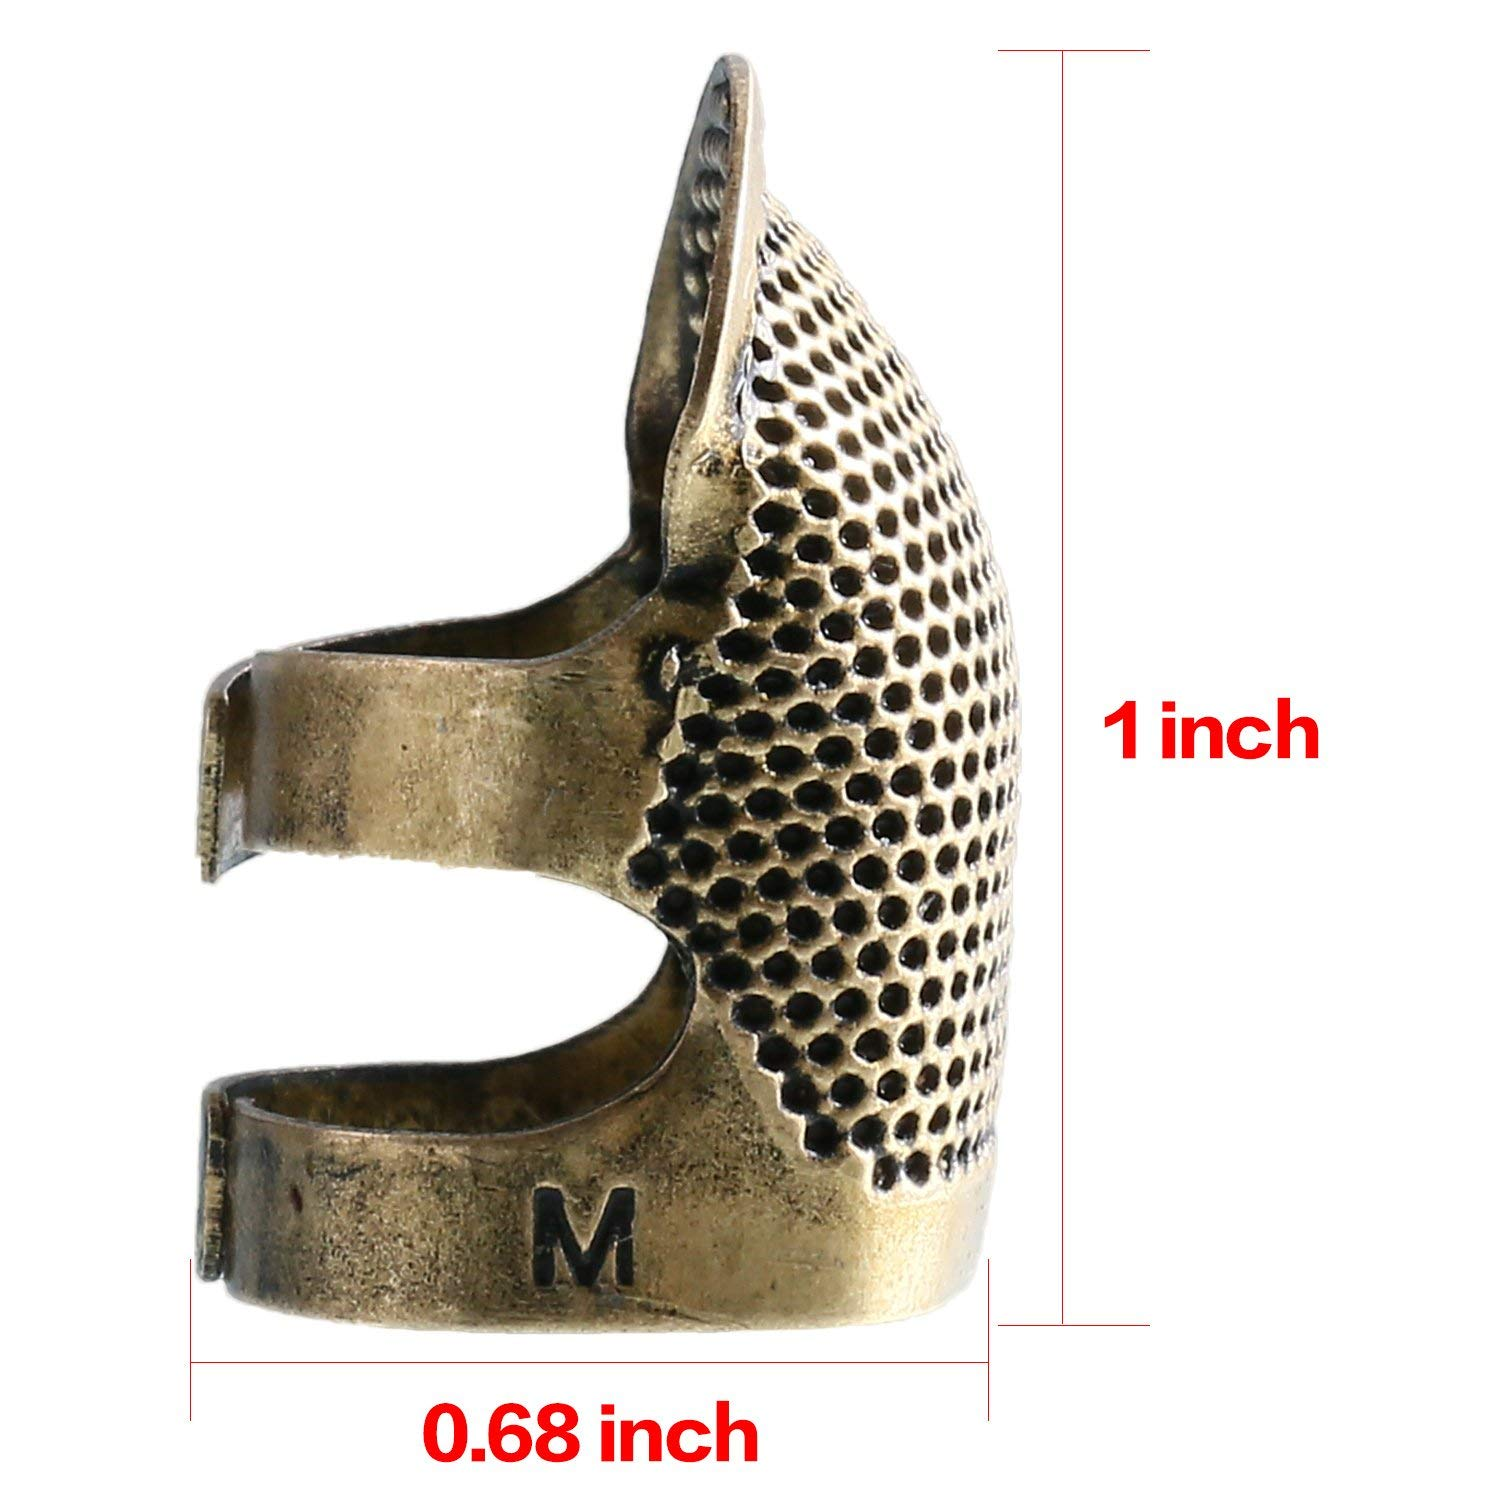 4 Pieces Medium Copper Finger Protector Thimble Adjustable Fingertip Thimble for Hand Sewing Embroidery Needlework